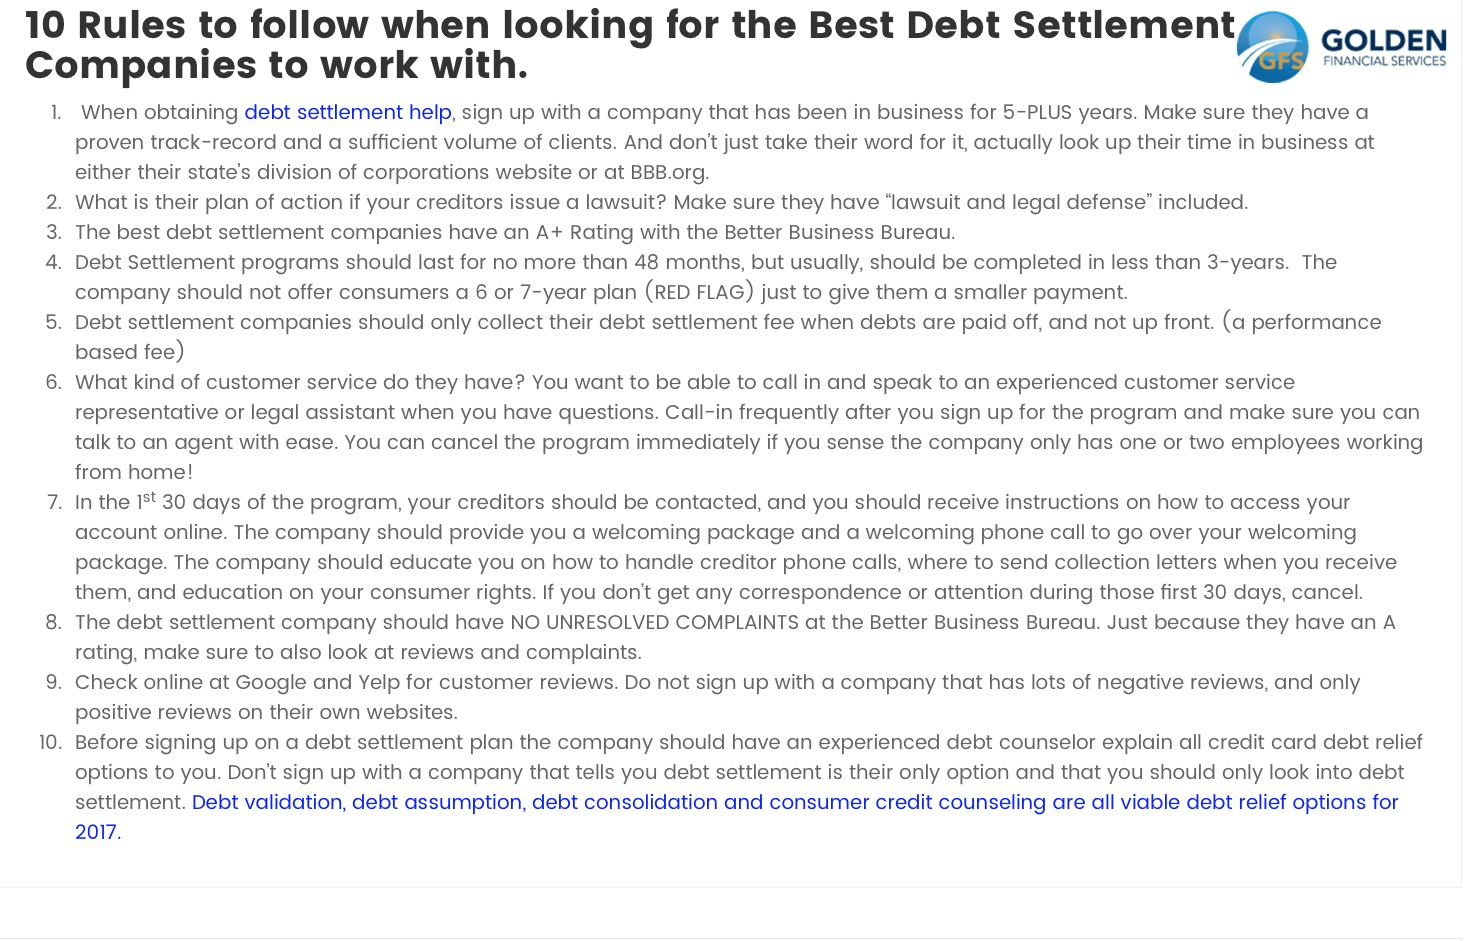 The best debt settlement companies have certain traits in common, follow these ten rules to ensure you are with the right company.